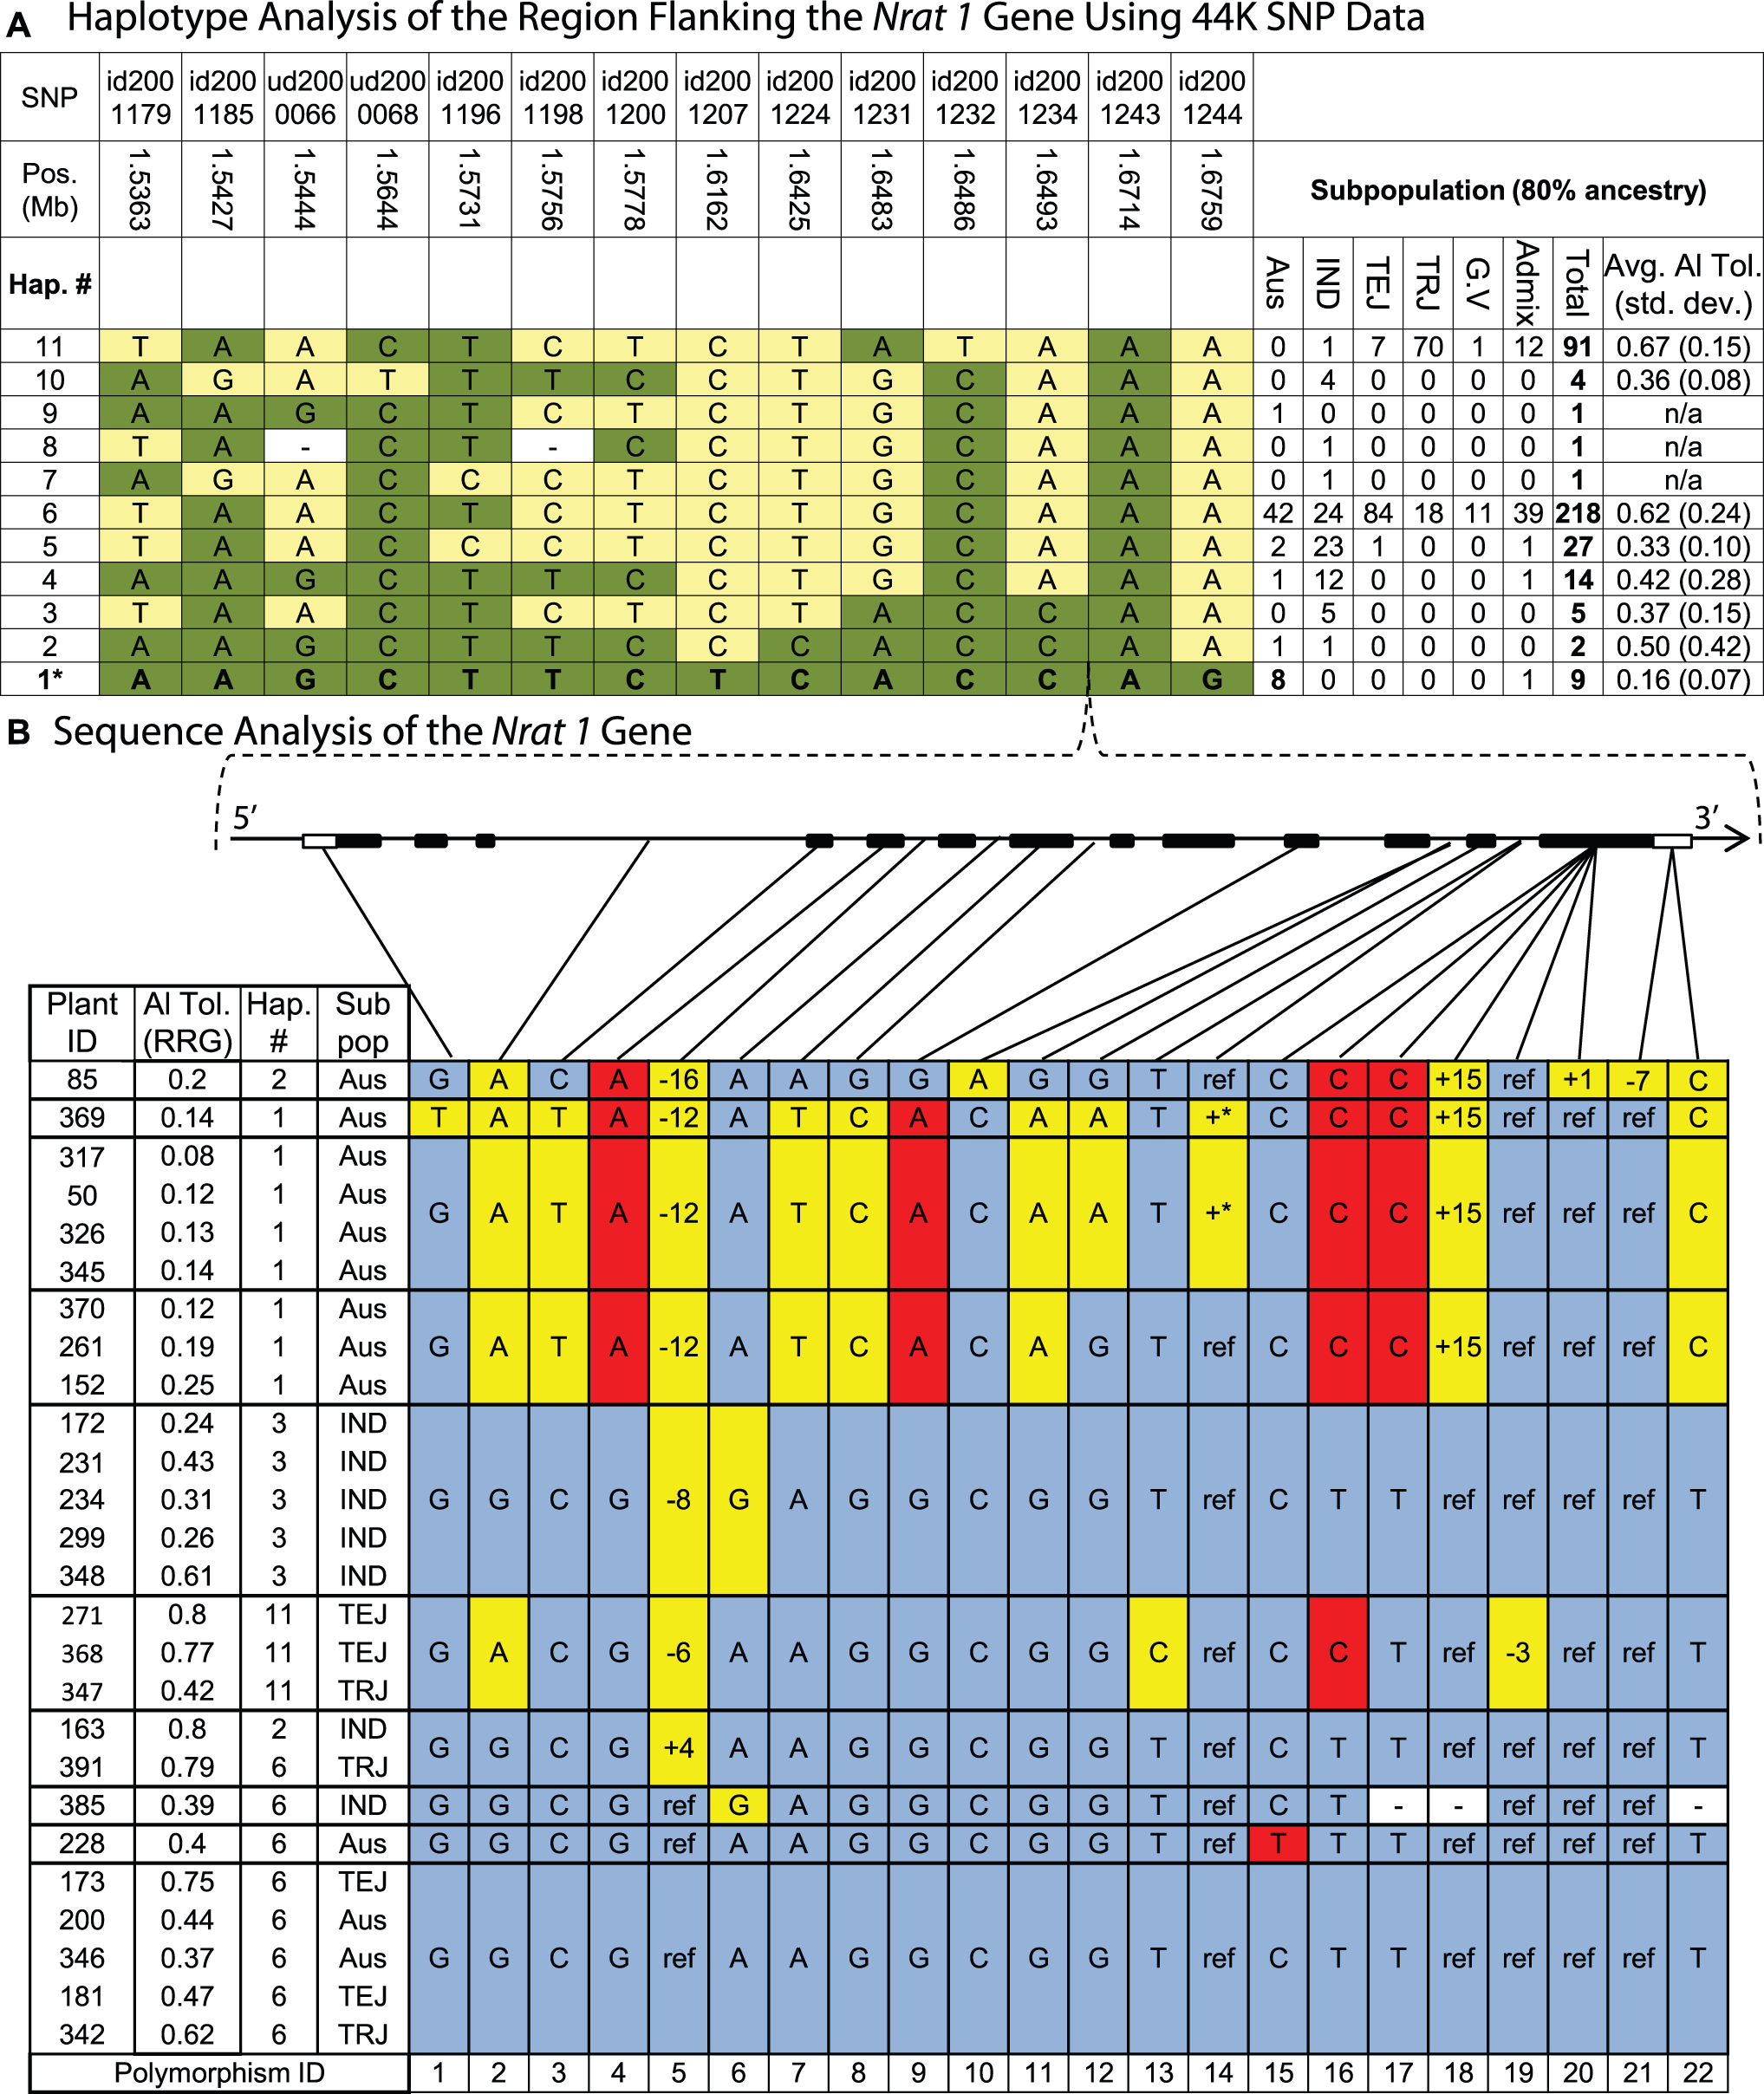 Haplotype analysis of the <i>Nrat1</i> gene region.